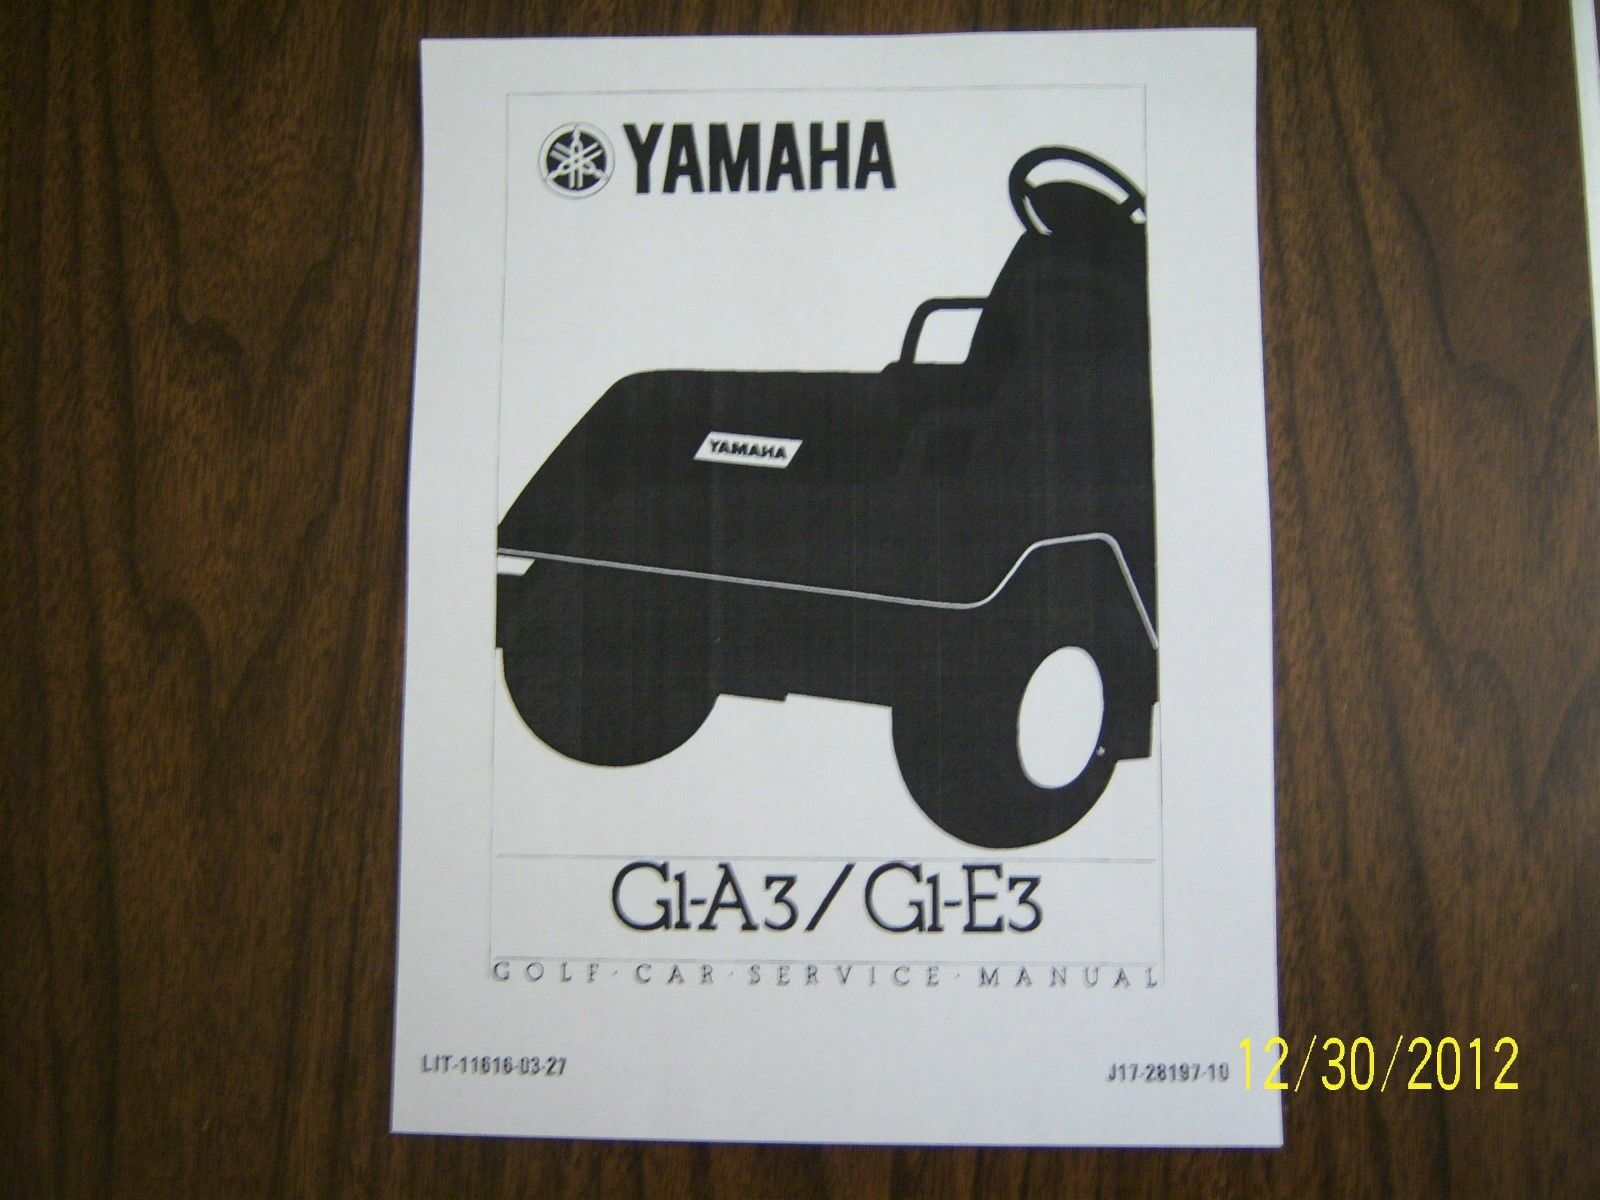 Yamaha Golf Cart Repair Service Manual G1 1983 Thru 1989 Owners G1a Wiring Diagram On Cd 1 Of 1free Shipping